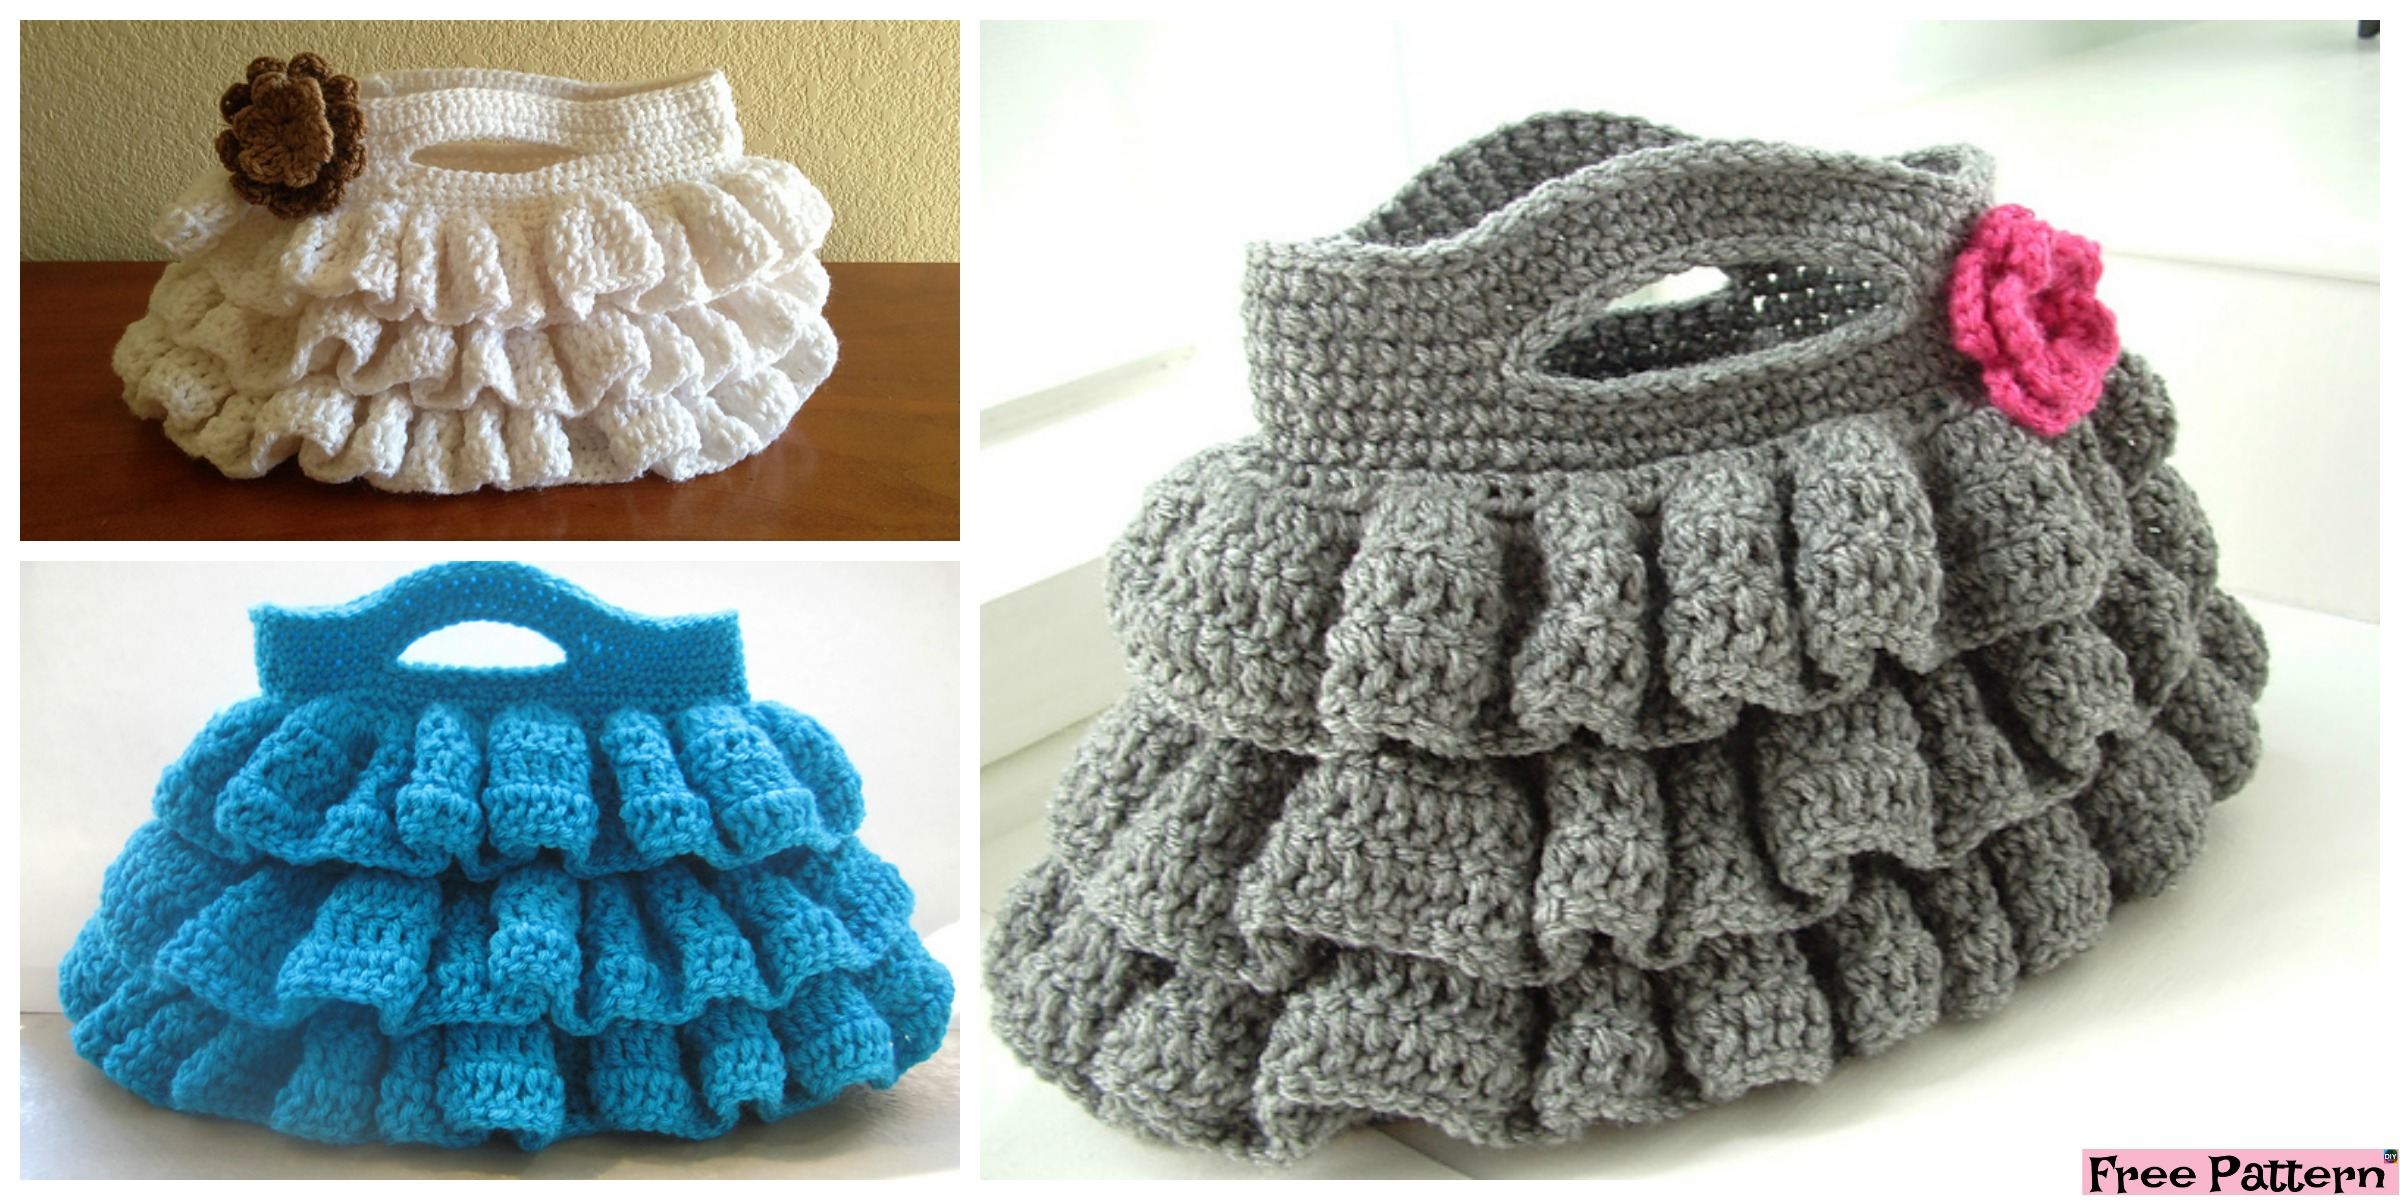 Cute Crochet Ruffled Bag – Free Pattern